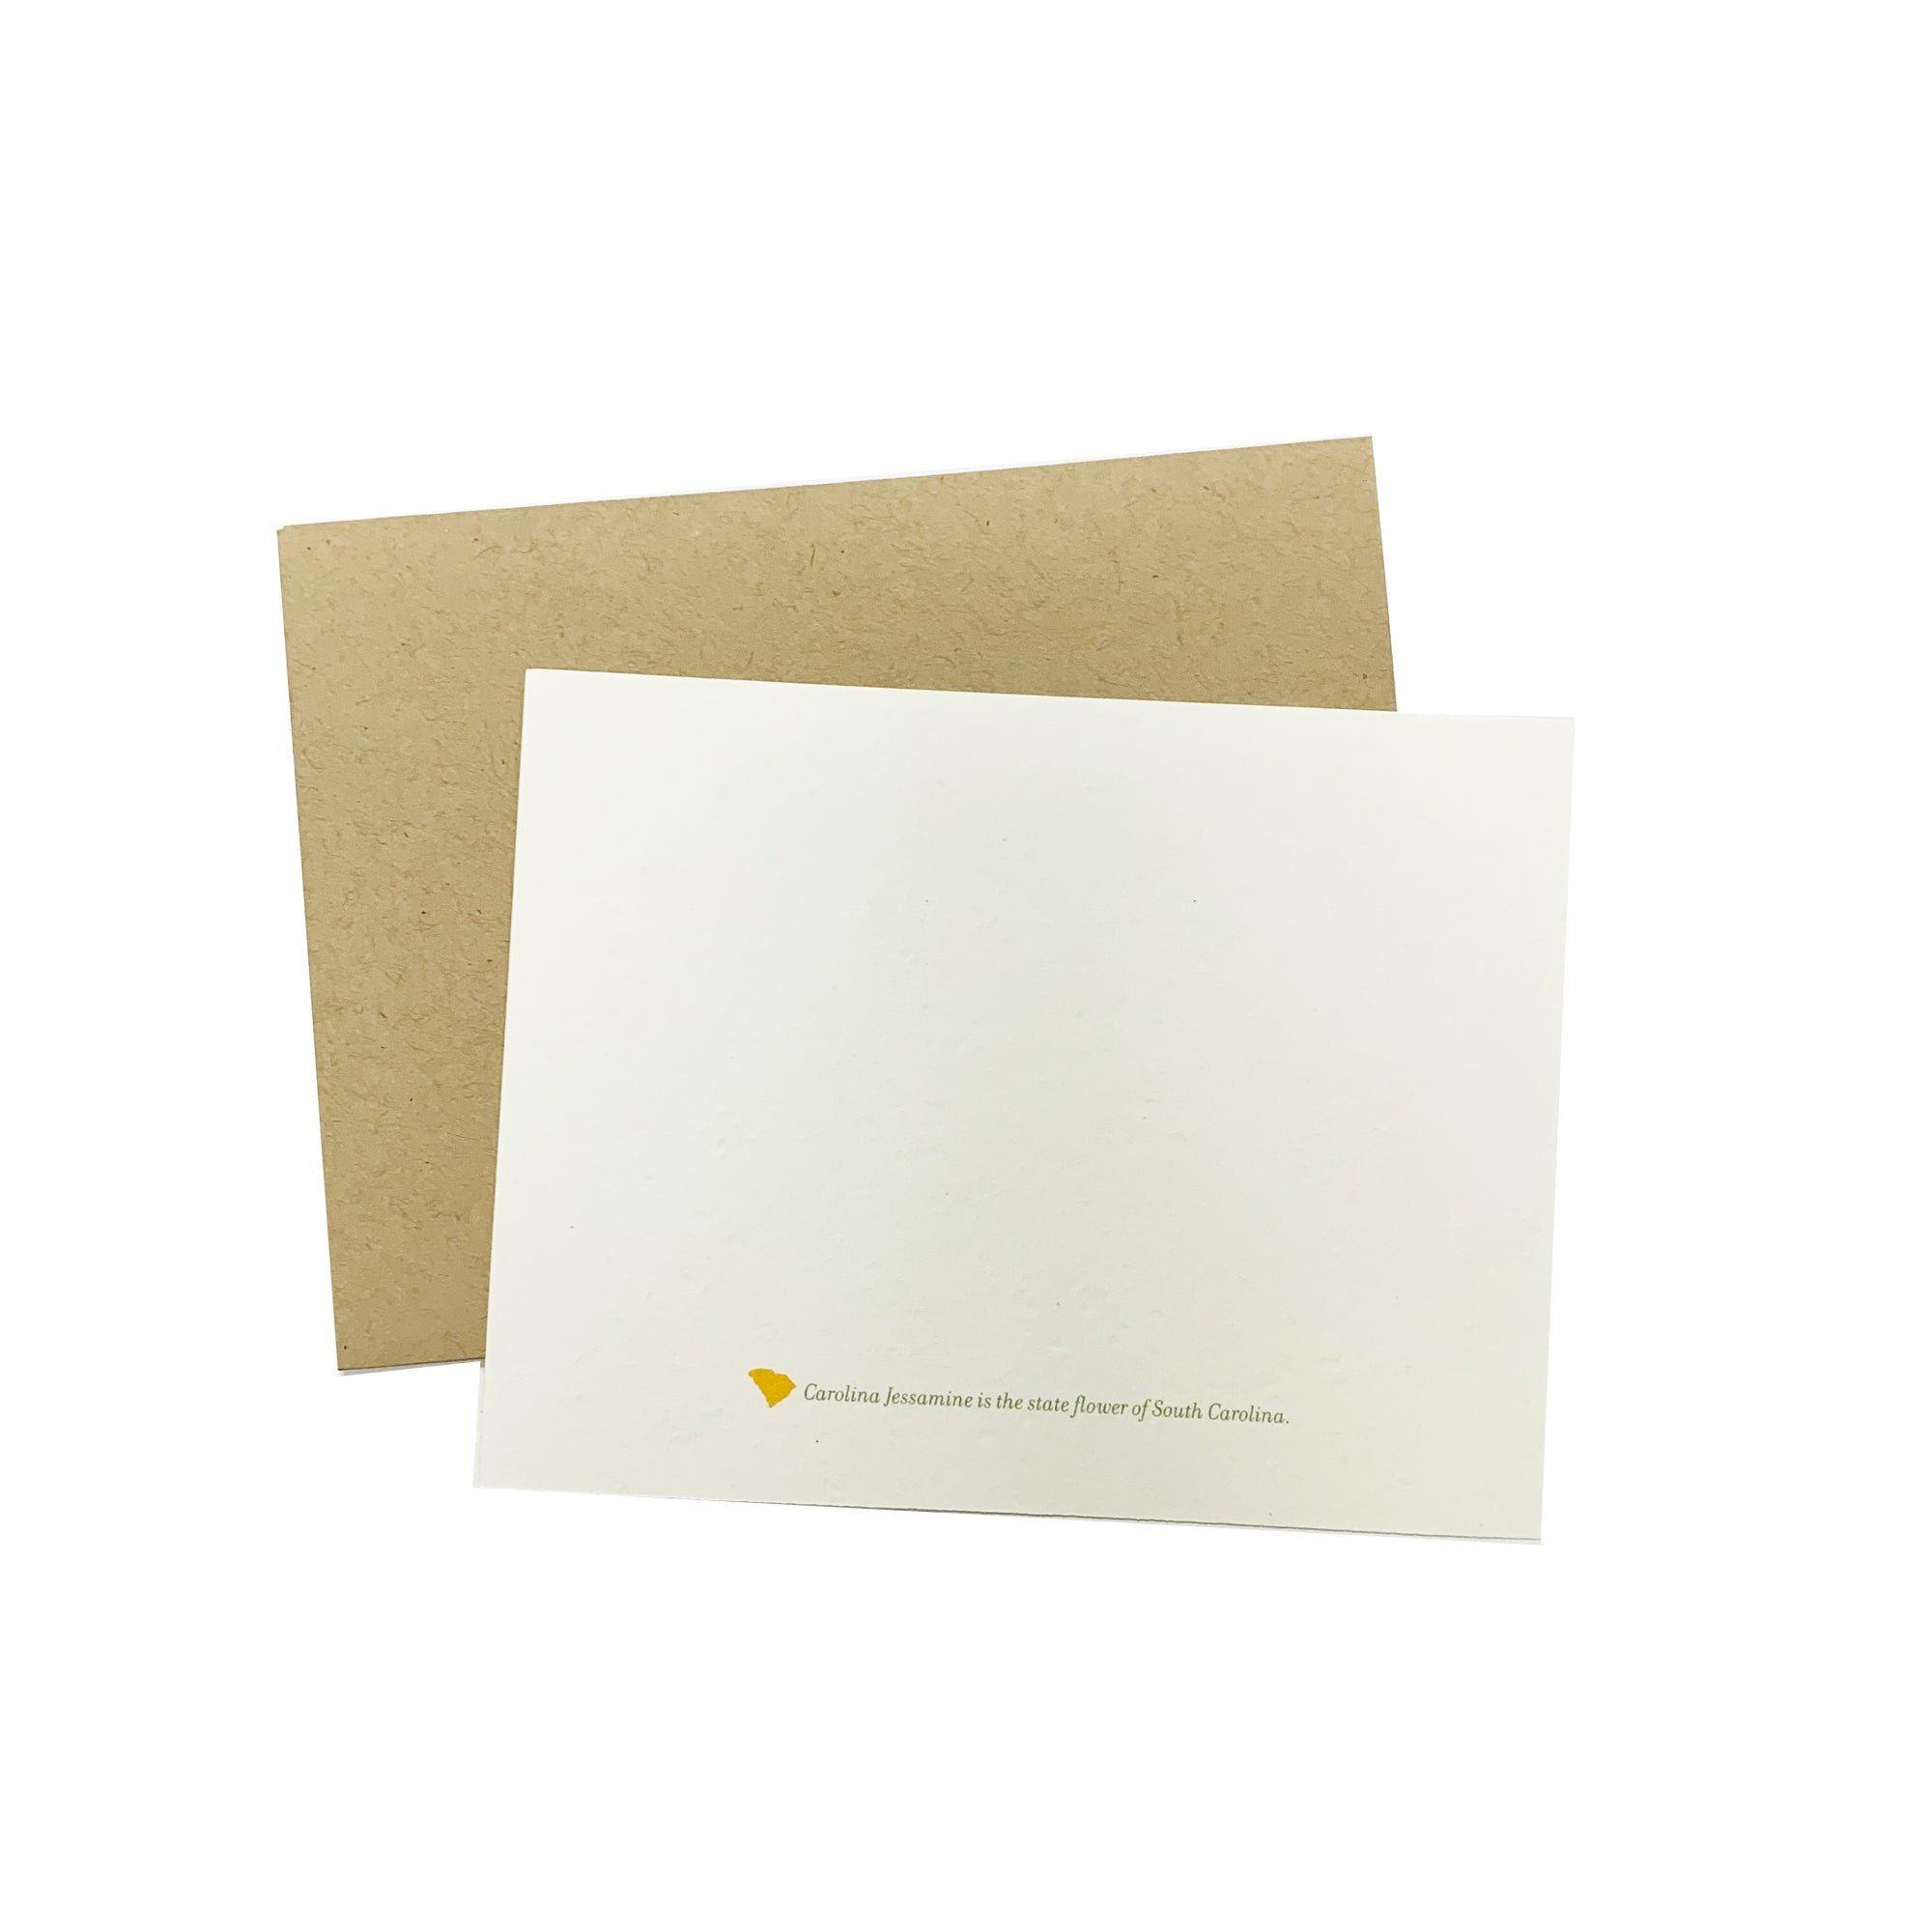 South Carolina State Flower Notecards